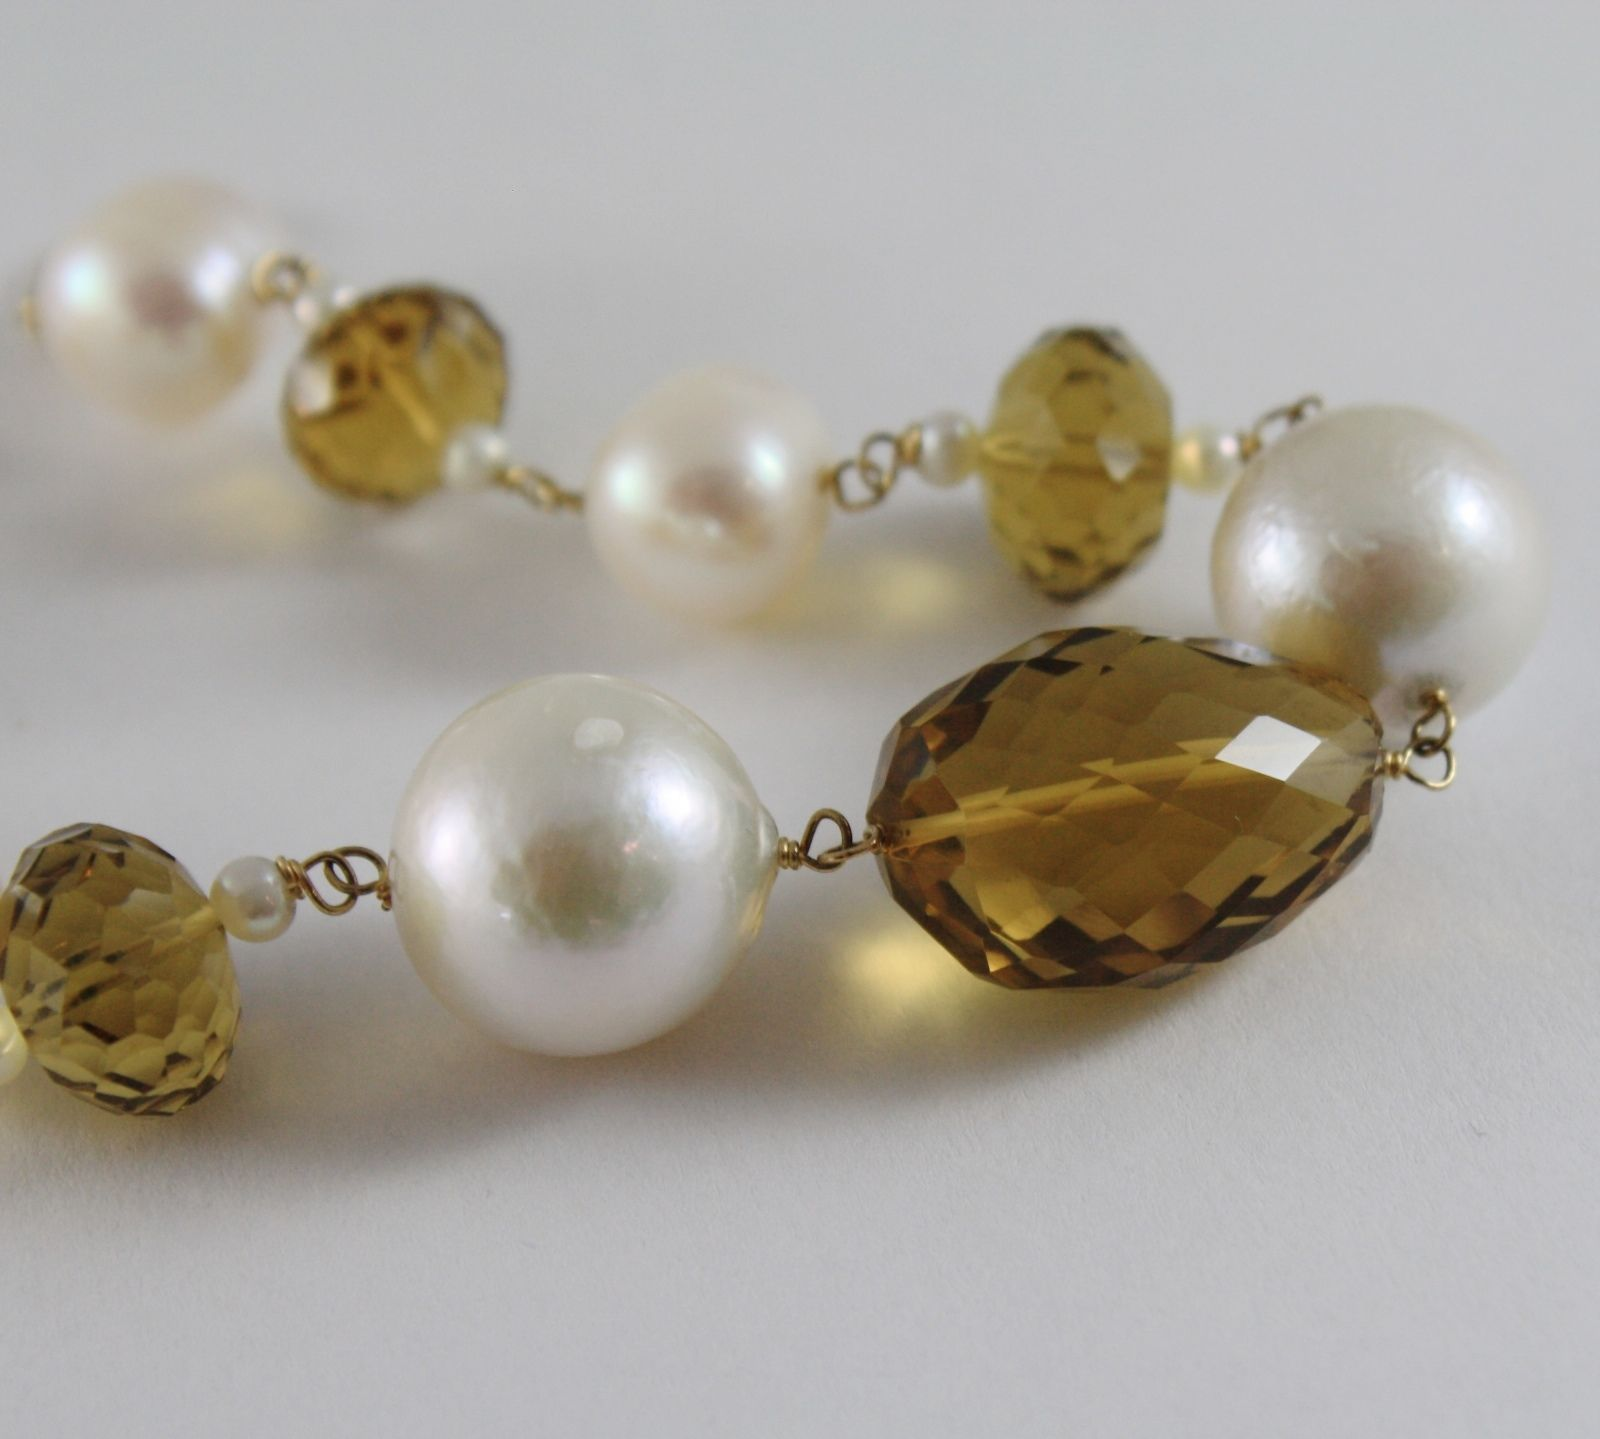 18K YELLOW GOLD BRACELET BIG WHITE PEARLS, CUSHION BROWN QUARTZ, MADE IN ITALY